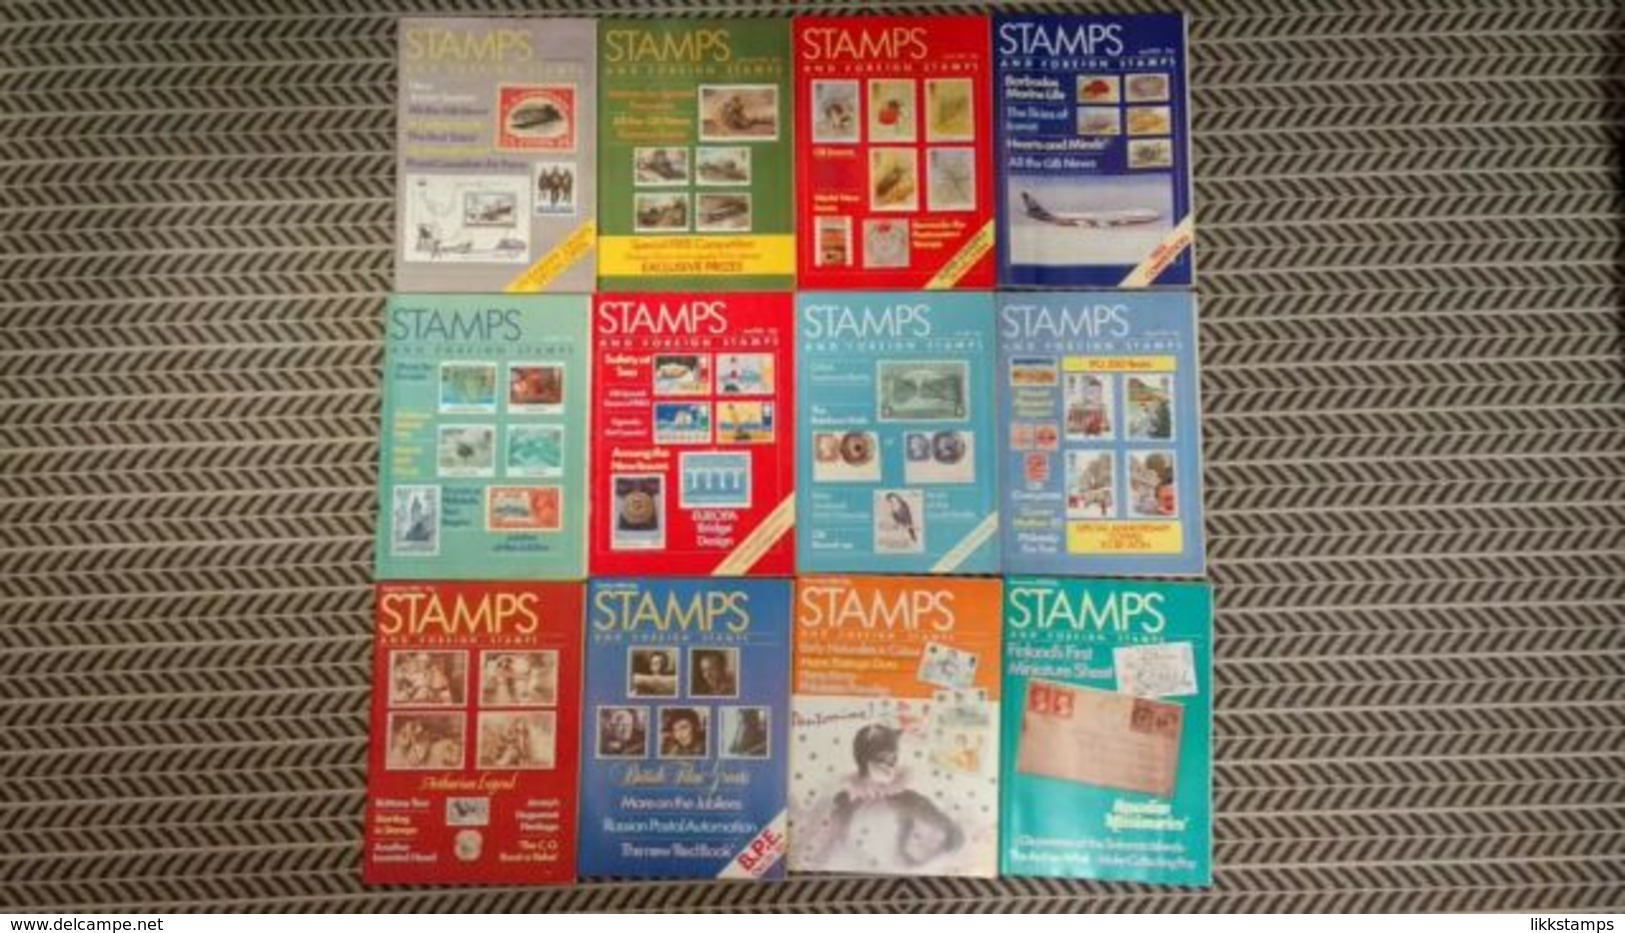 STAMPS AND FOREIGN STAMPS MAGAZINE JANUARY 1985 TO DECEMBER 1985 - Inglesi (dal 1941)